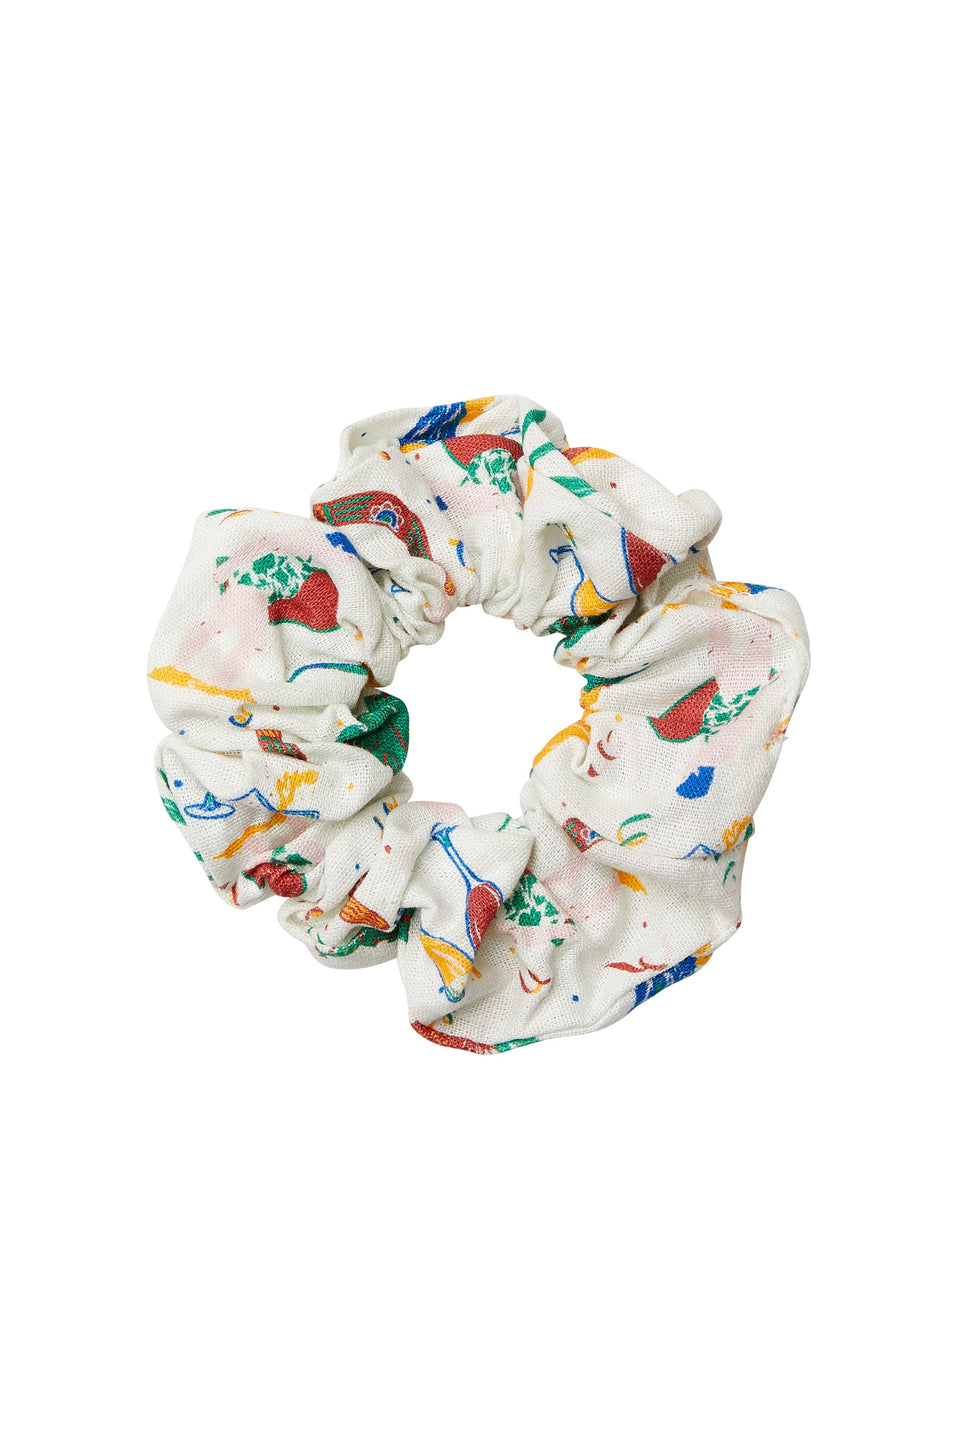 Say Yes to Scrunchie (CLDL-060)